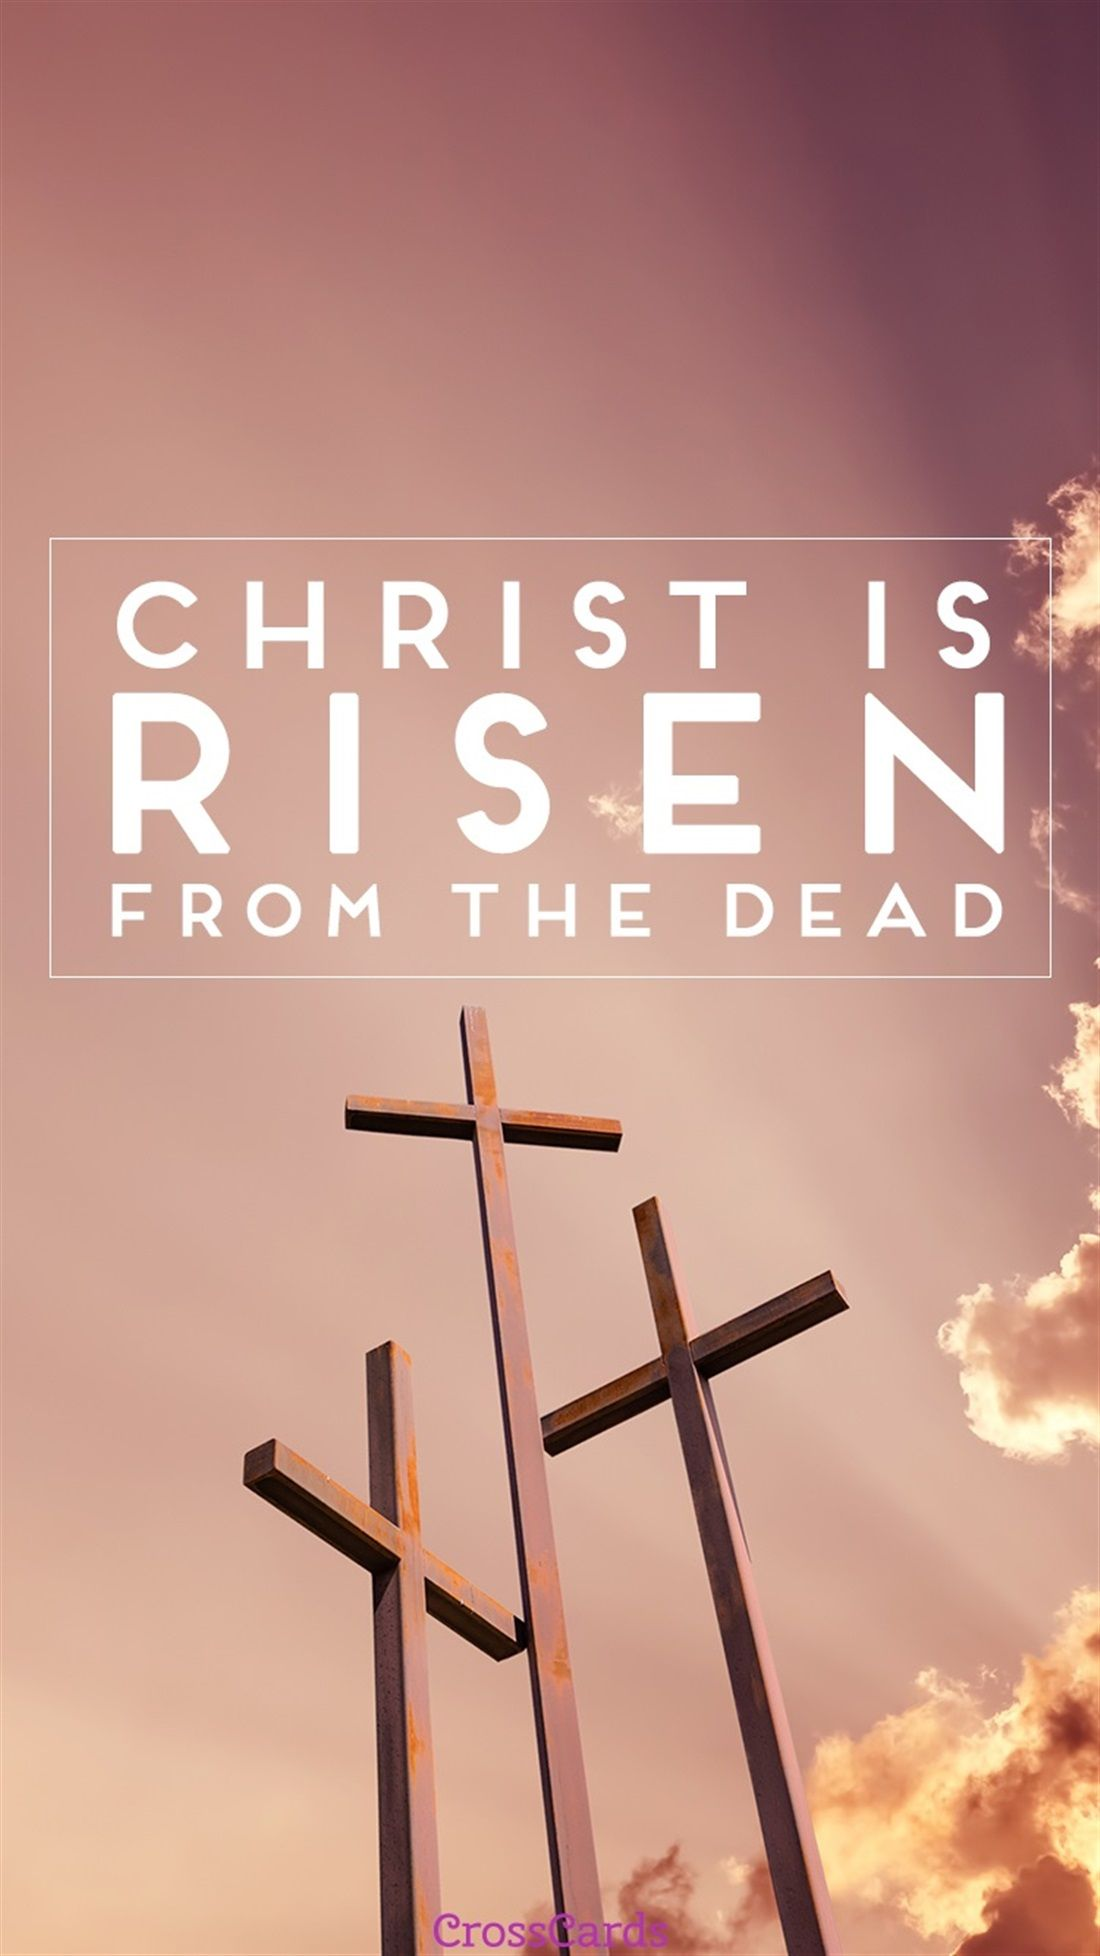 He Is Risen Iphone 1508758 Hd Wallpaper Backgrounds Download Free download the iphone 11 stock wallpaper 1 wallpaper ,beaty your iphone. he is risen iphone 1508758 hd